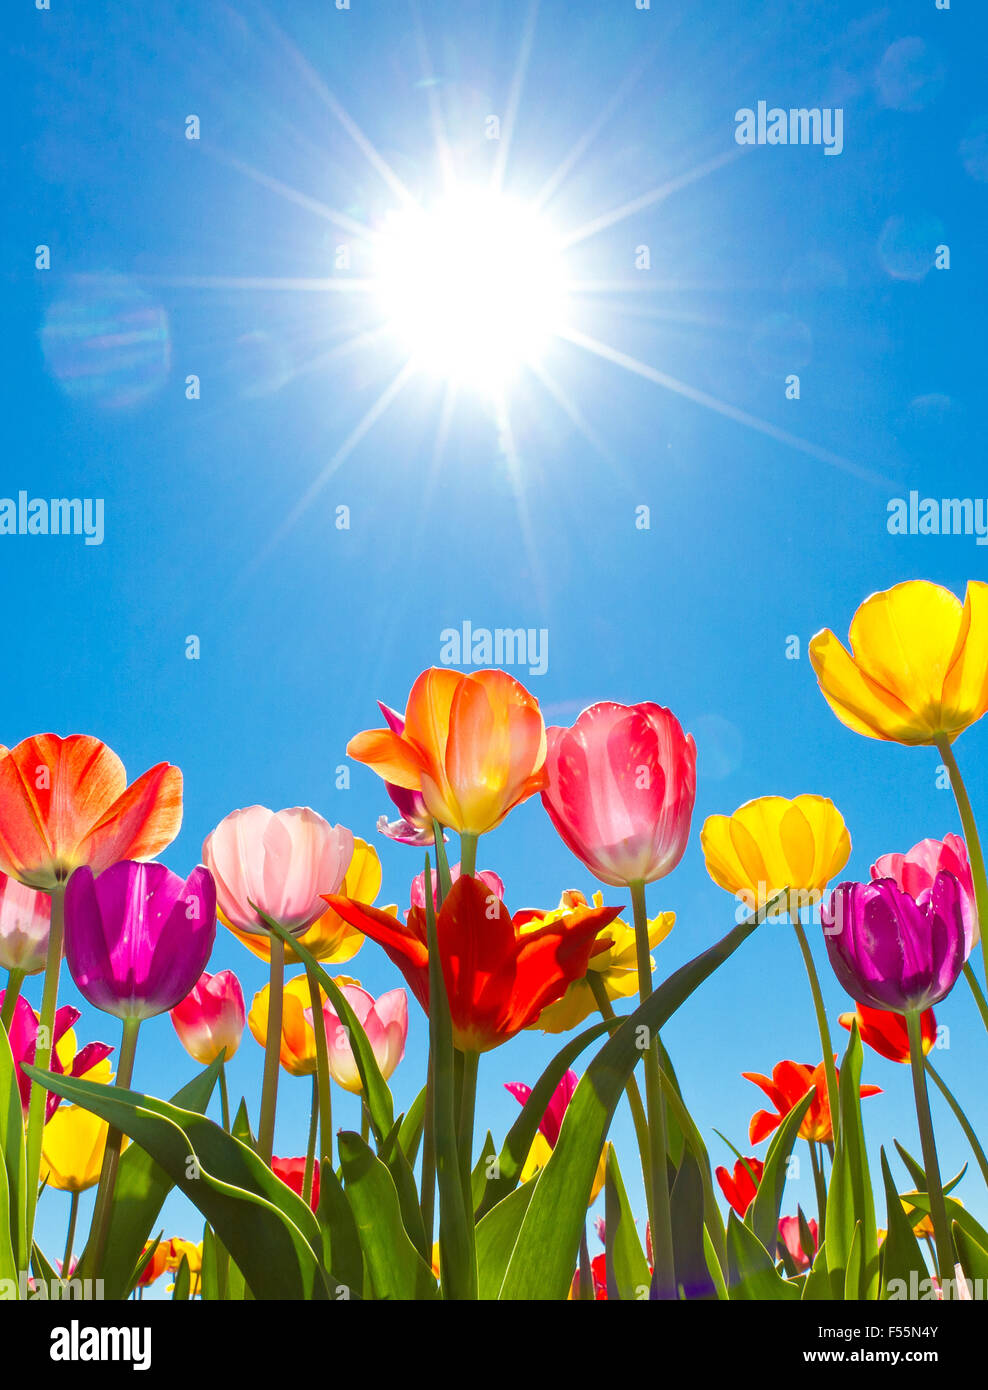 Tulipes colorées au soleil Photo Stock